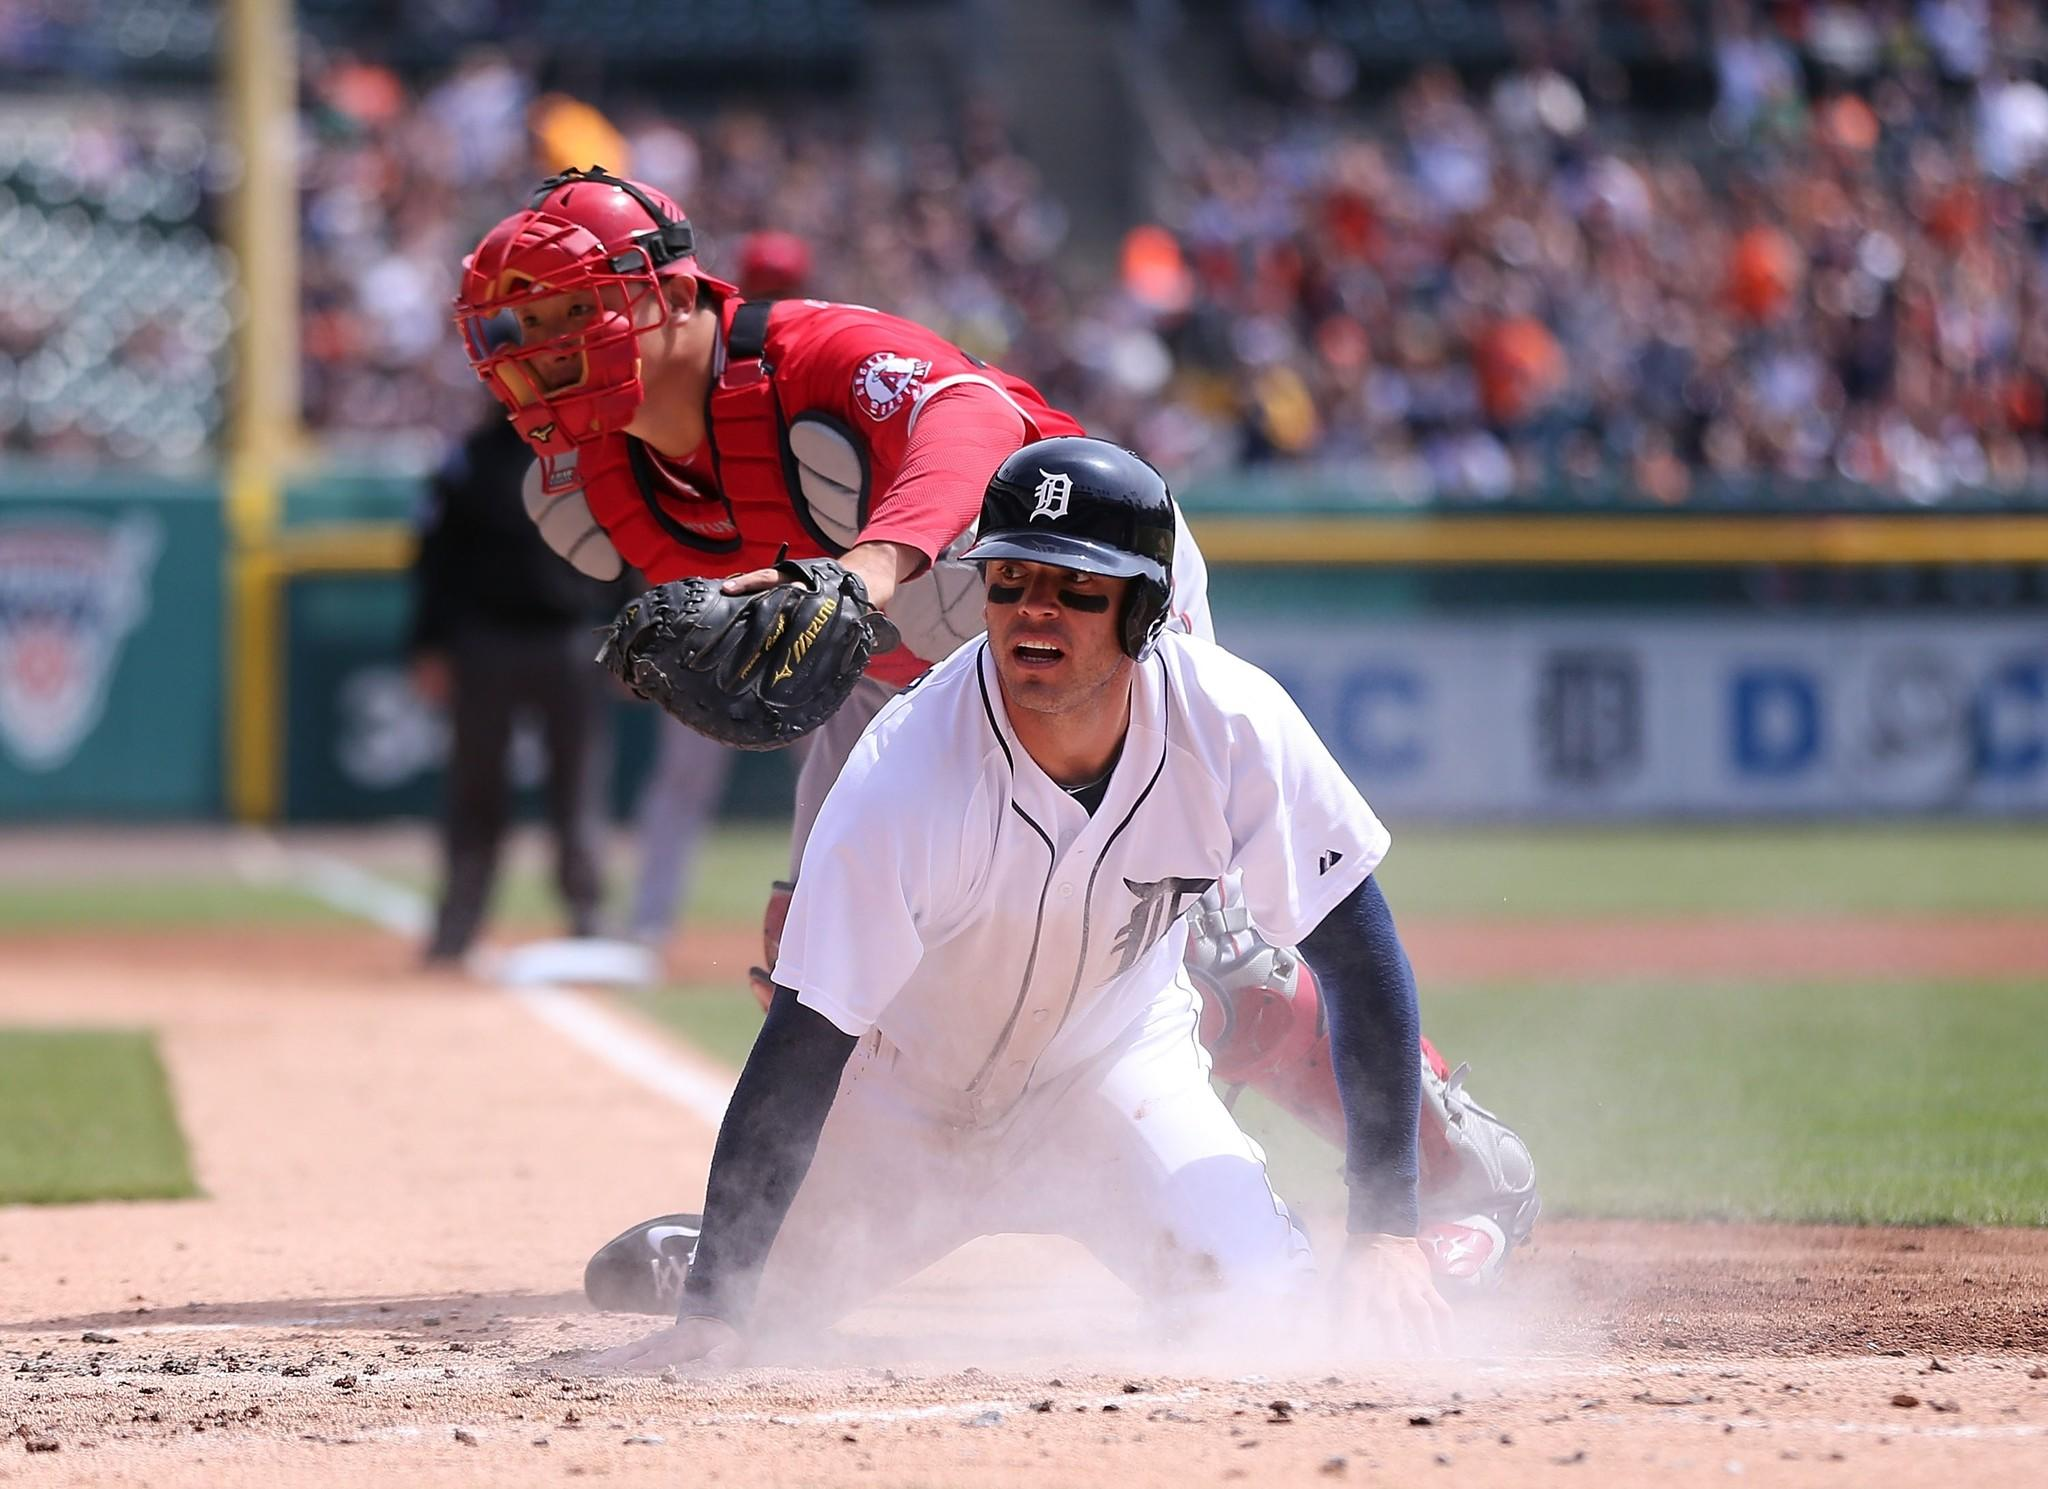 Tigers second baseman Ian Kinsler is safe at the plate after a series of throwing errors in the first inning Sunday in Detroit.